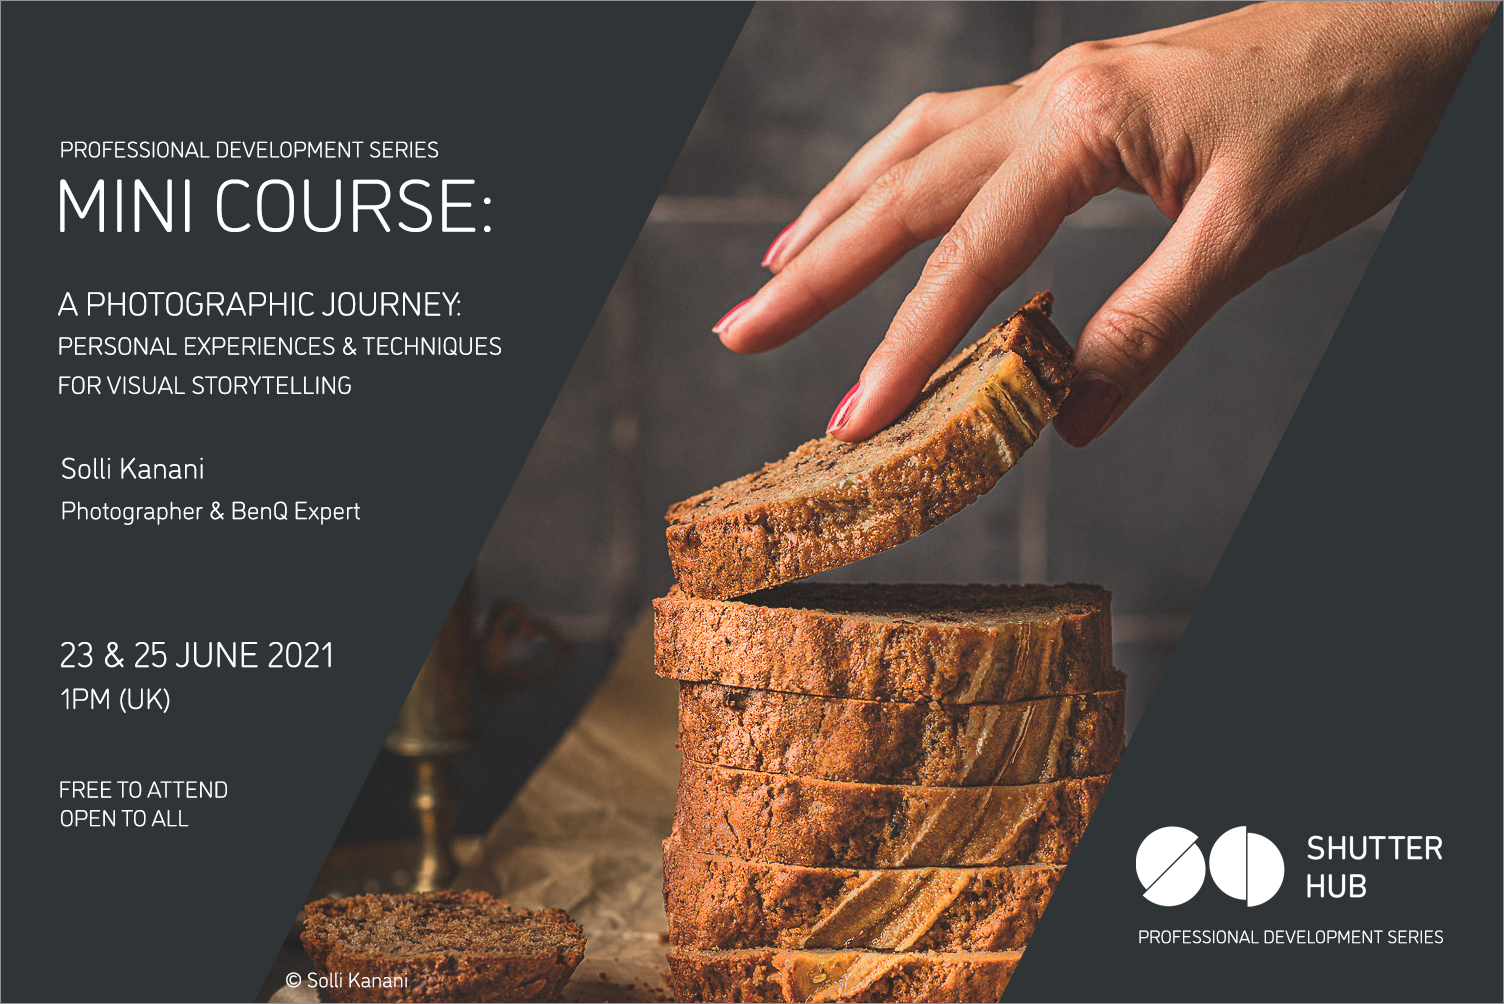 Graphic with the words 'Professional Development Series, MINI COURSE: A Photographic Journey: Personal Experiences & techniques for visual storytelling, Solli Kanani, Photographer & BenQ Expert, 23 & 25 June 2021, 1pm (UK), Free to attend, open to all' A photograph of a hand picking up a slice of a cut loaf is shown, with '© Solli Kanani' below, and the Shutter Hub logo is at the bottom right with 'Professional Development Series' written below.